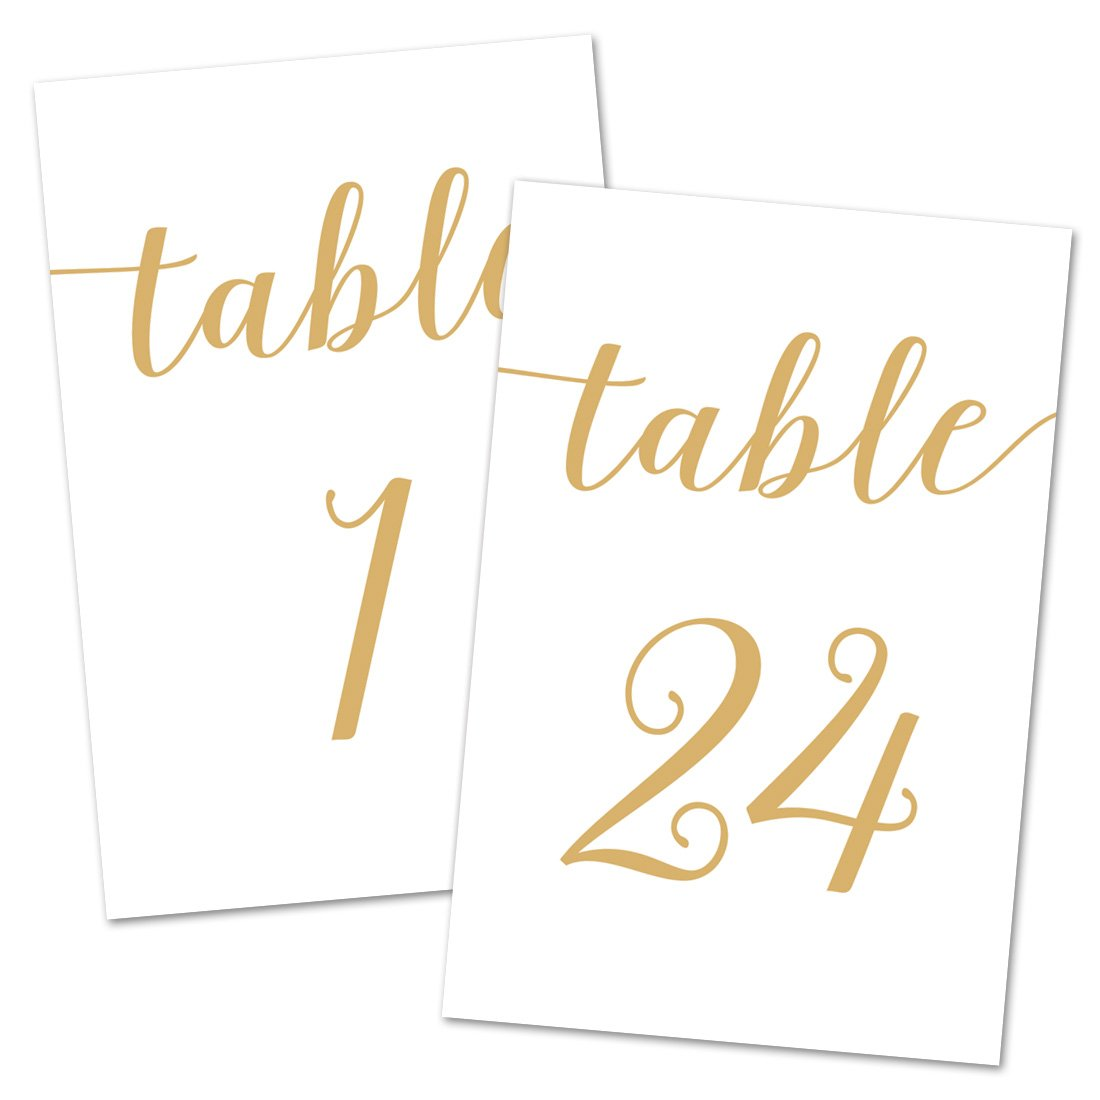 4x6 Table Number Cards 1-24 (Gold Color) - NOT GOLD FOIL MyExpression.com LLC